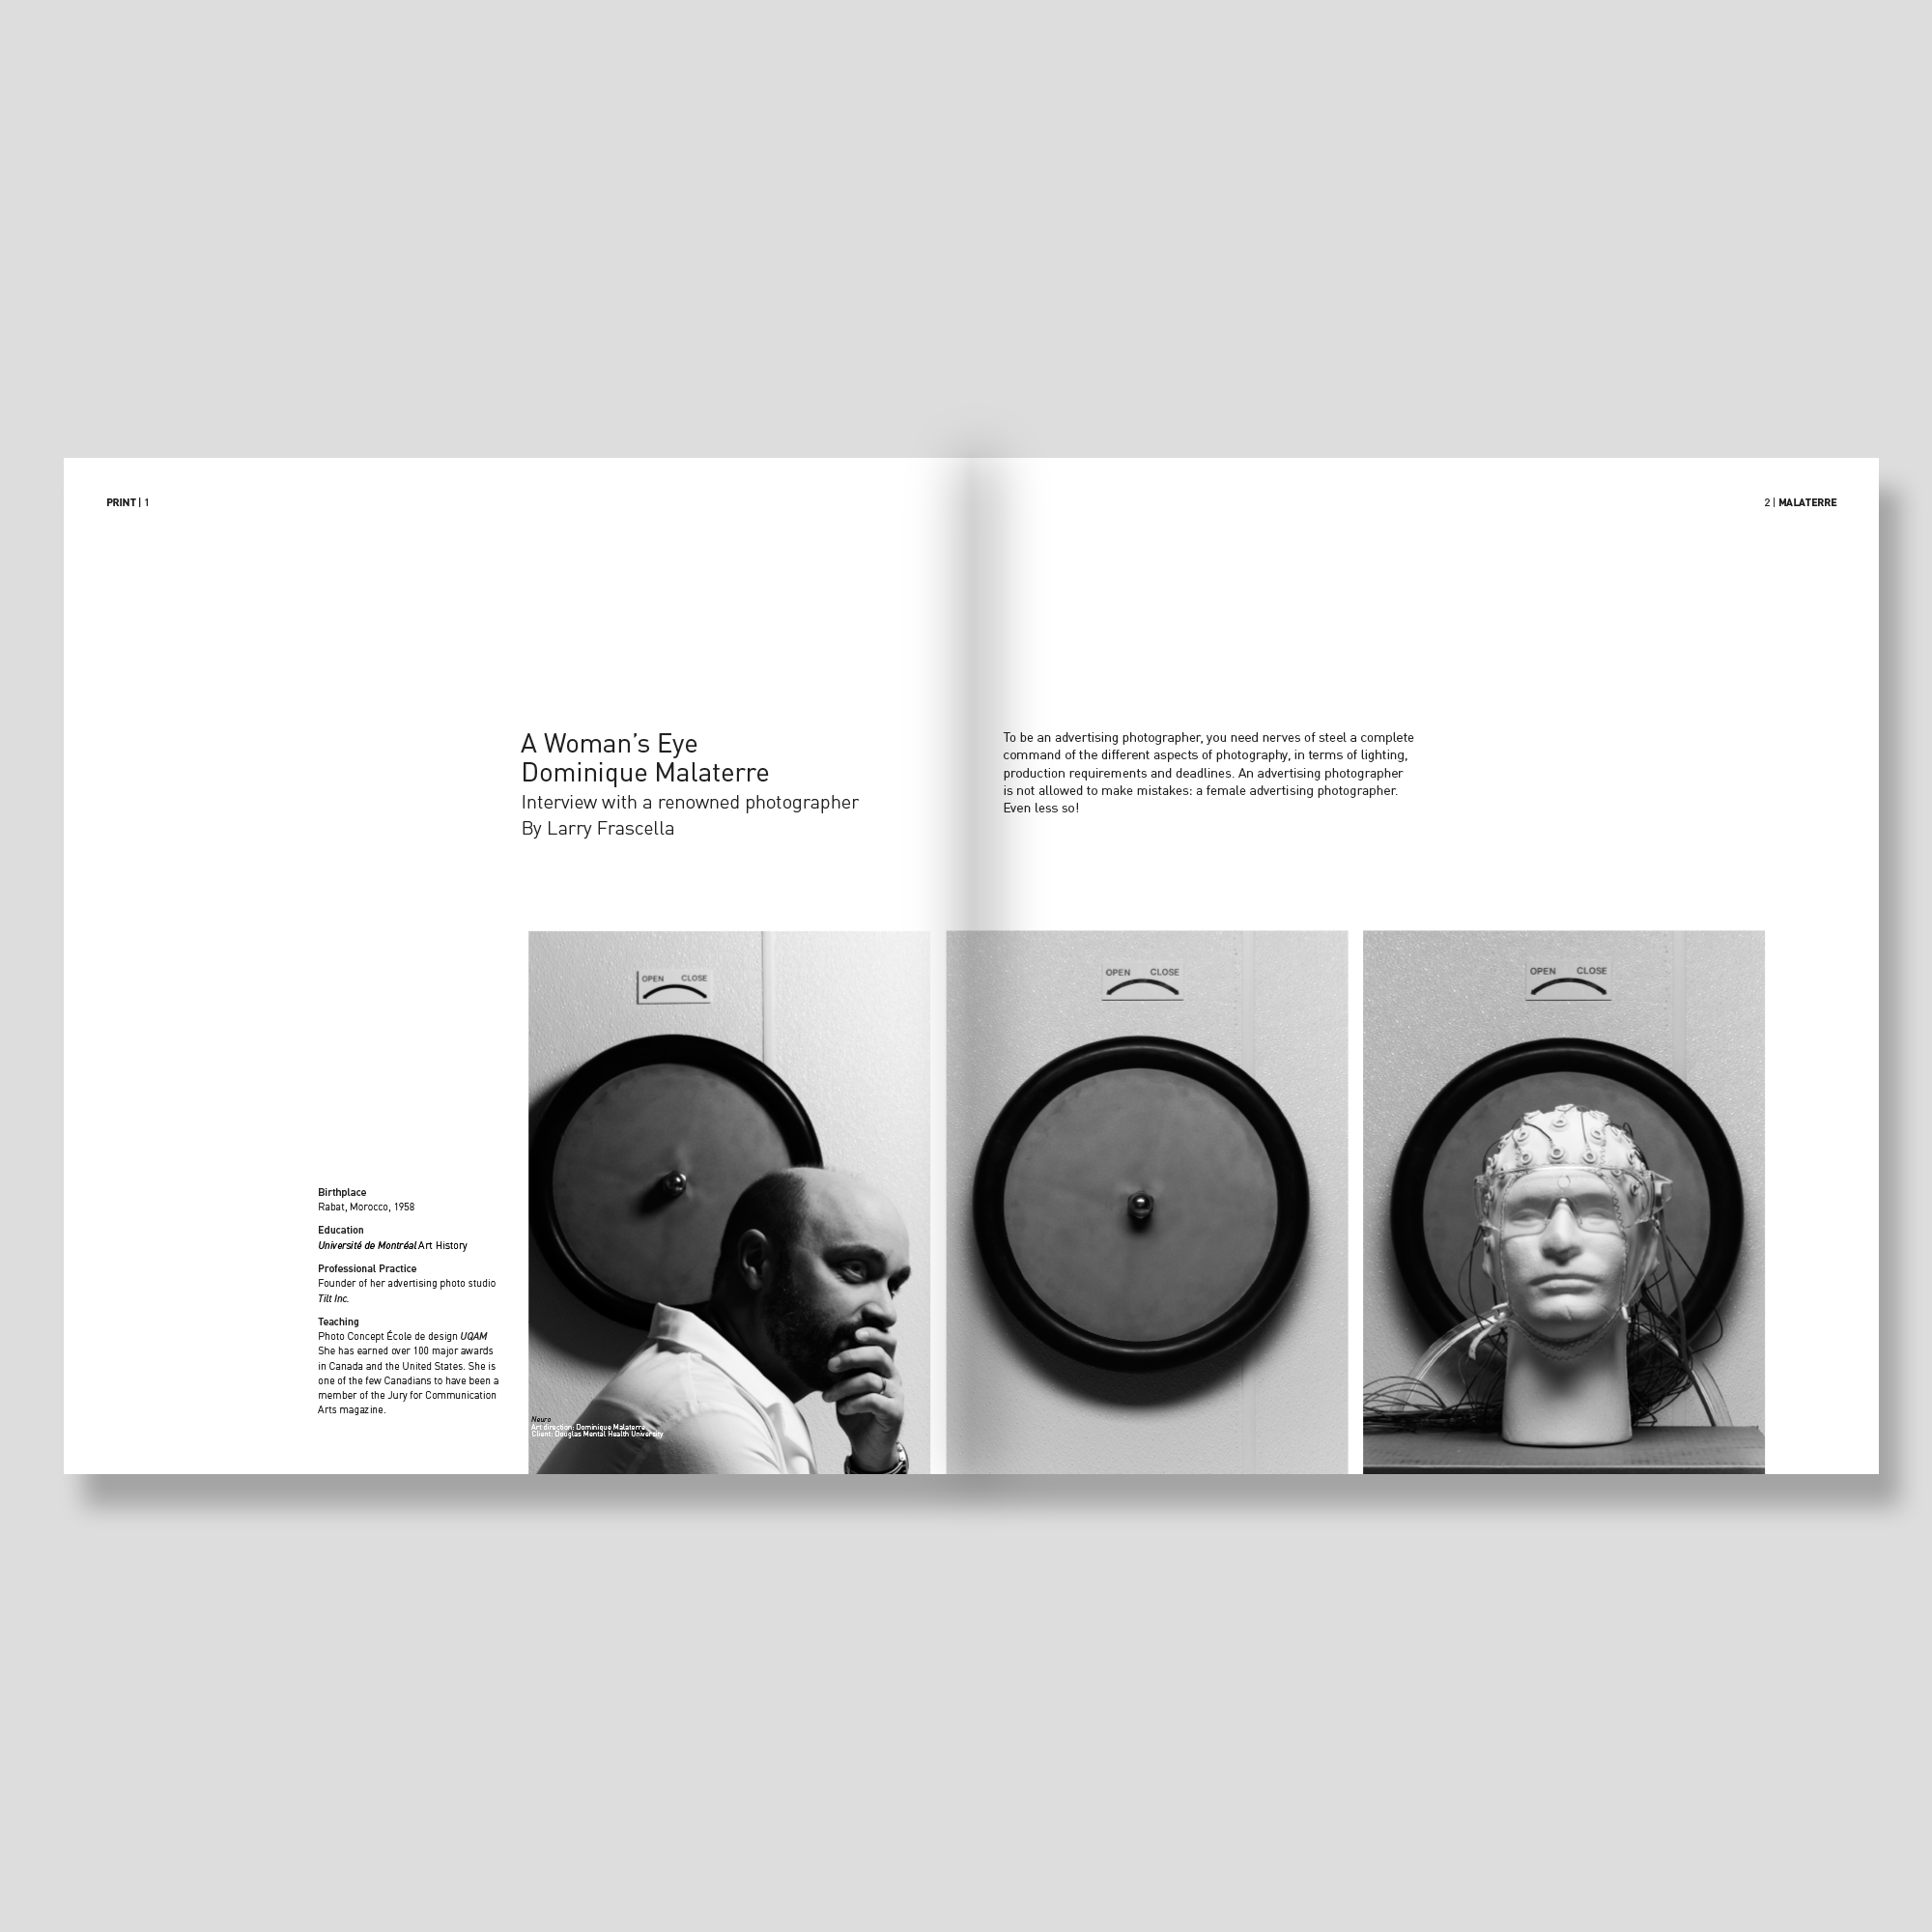 spread of the print magazine in black and white